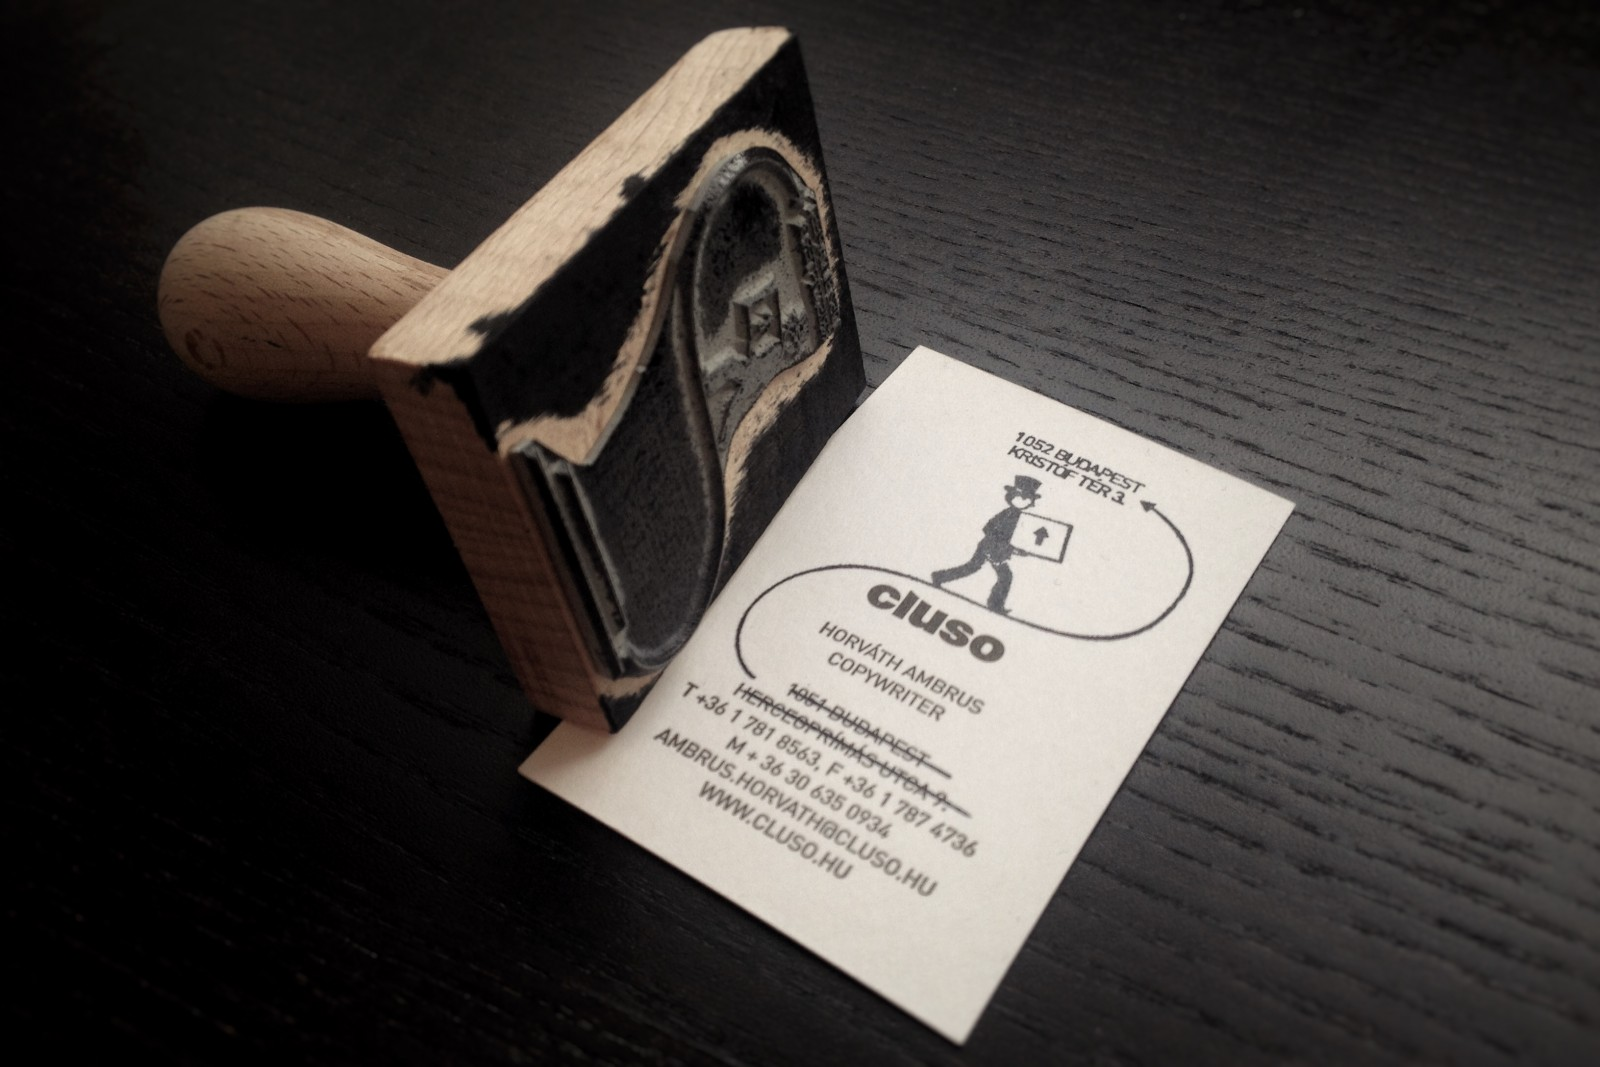 The Business Card Stamp – Ambrus Hørvath